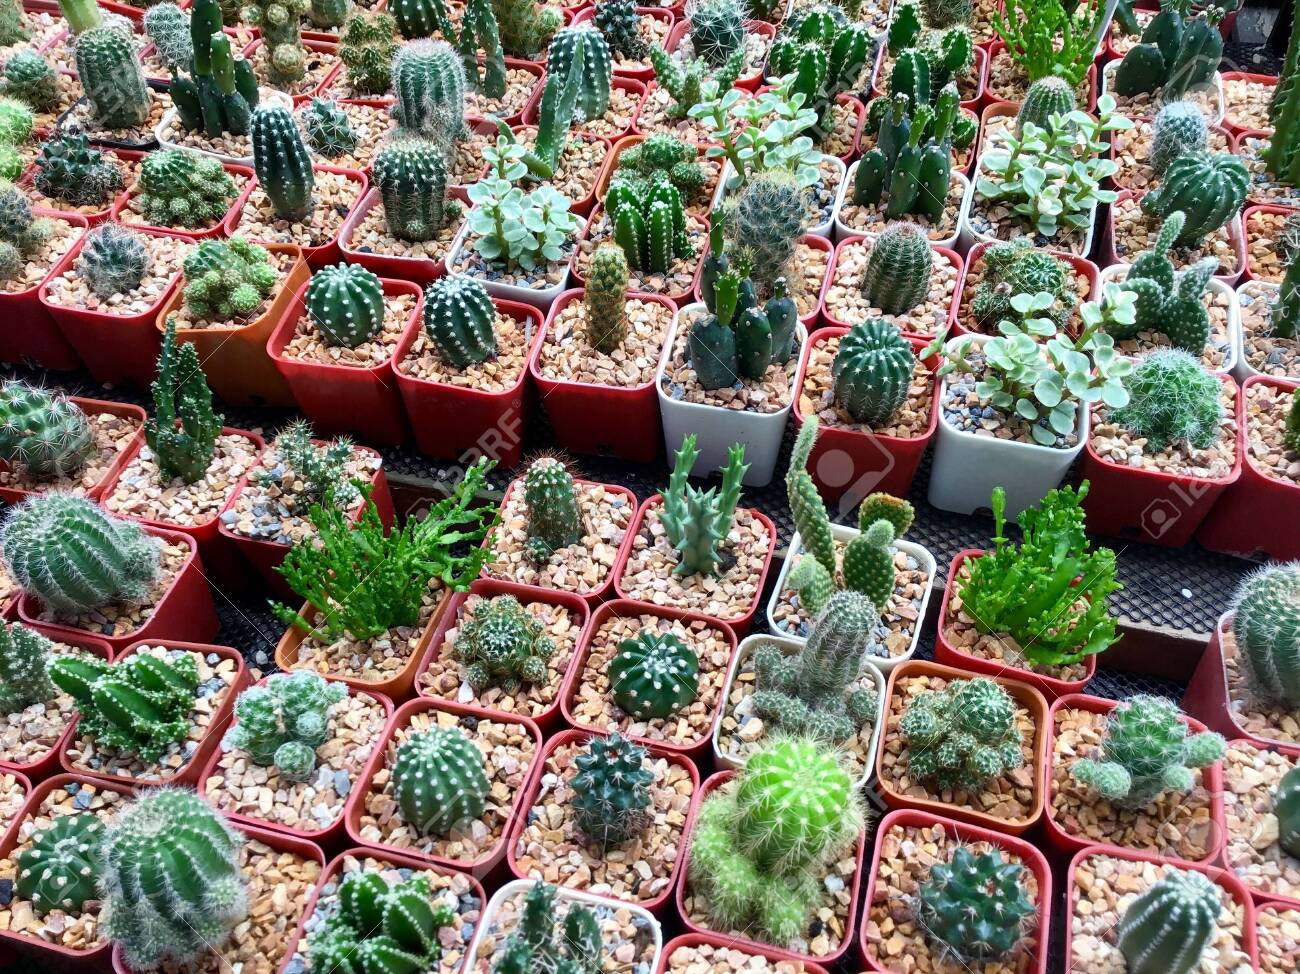 Assorted Beautiful Cactus Plants In Flower Shop For Garden Decoration.  Stock Photo, Picture And Royalty Free Image. Image 129828018.